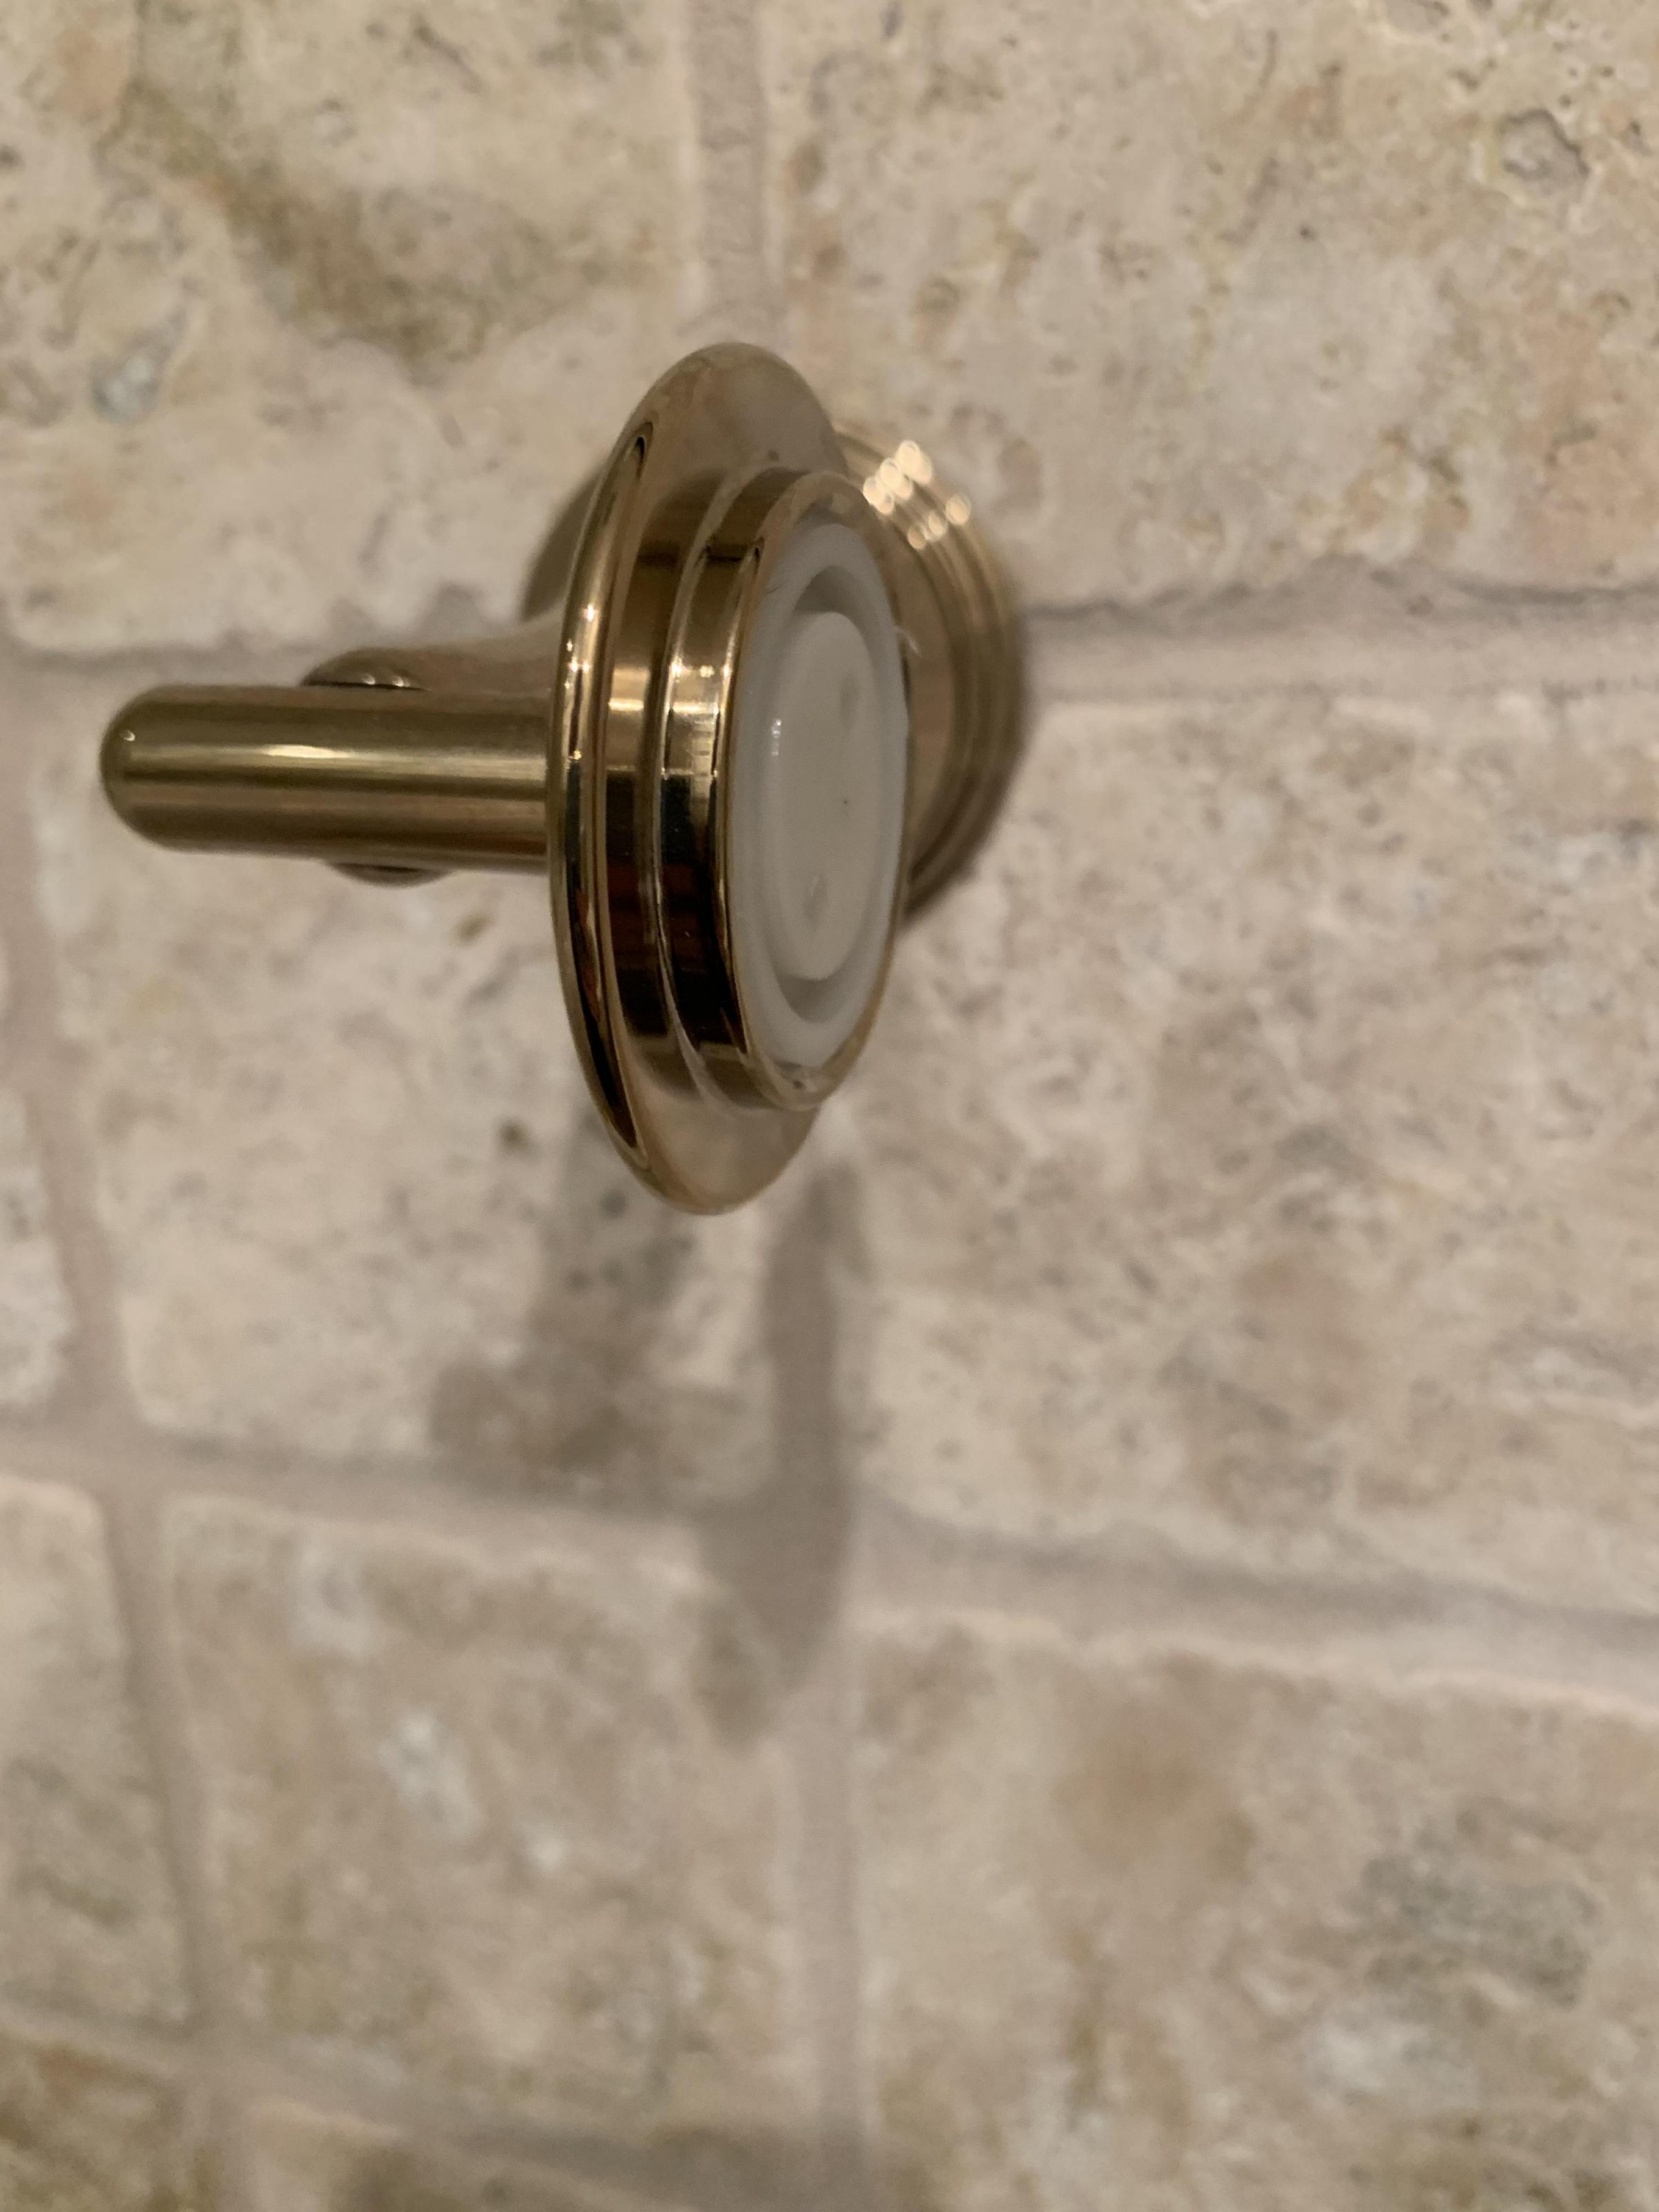 toilet paper holder without bar-2f950acb-479a-446b-978e-cdeb3d5fadc2_1542600212552.jpg